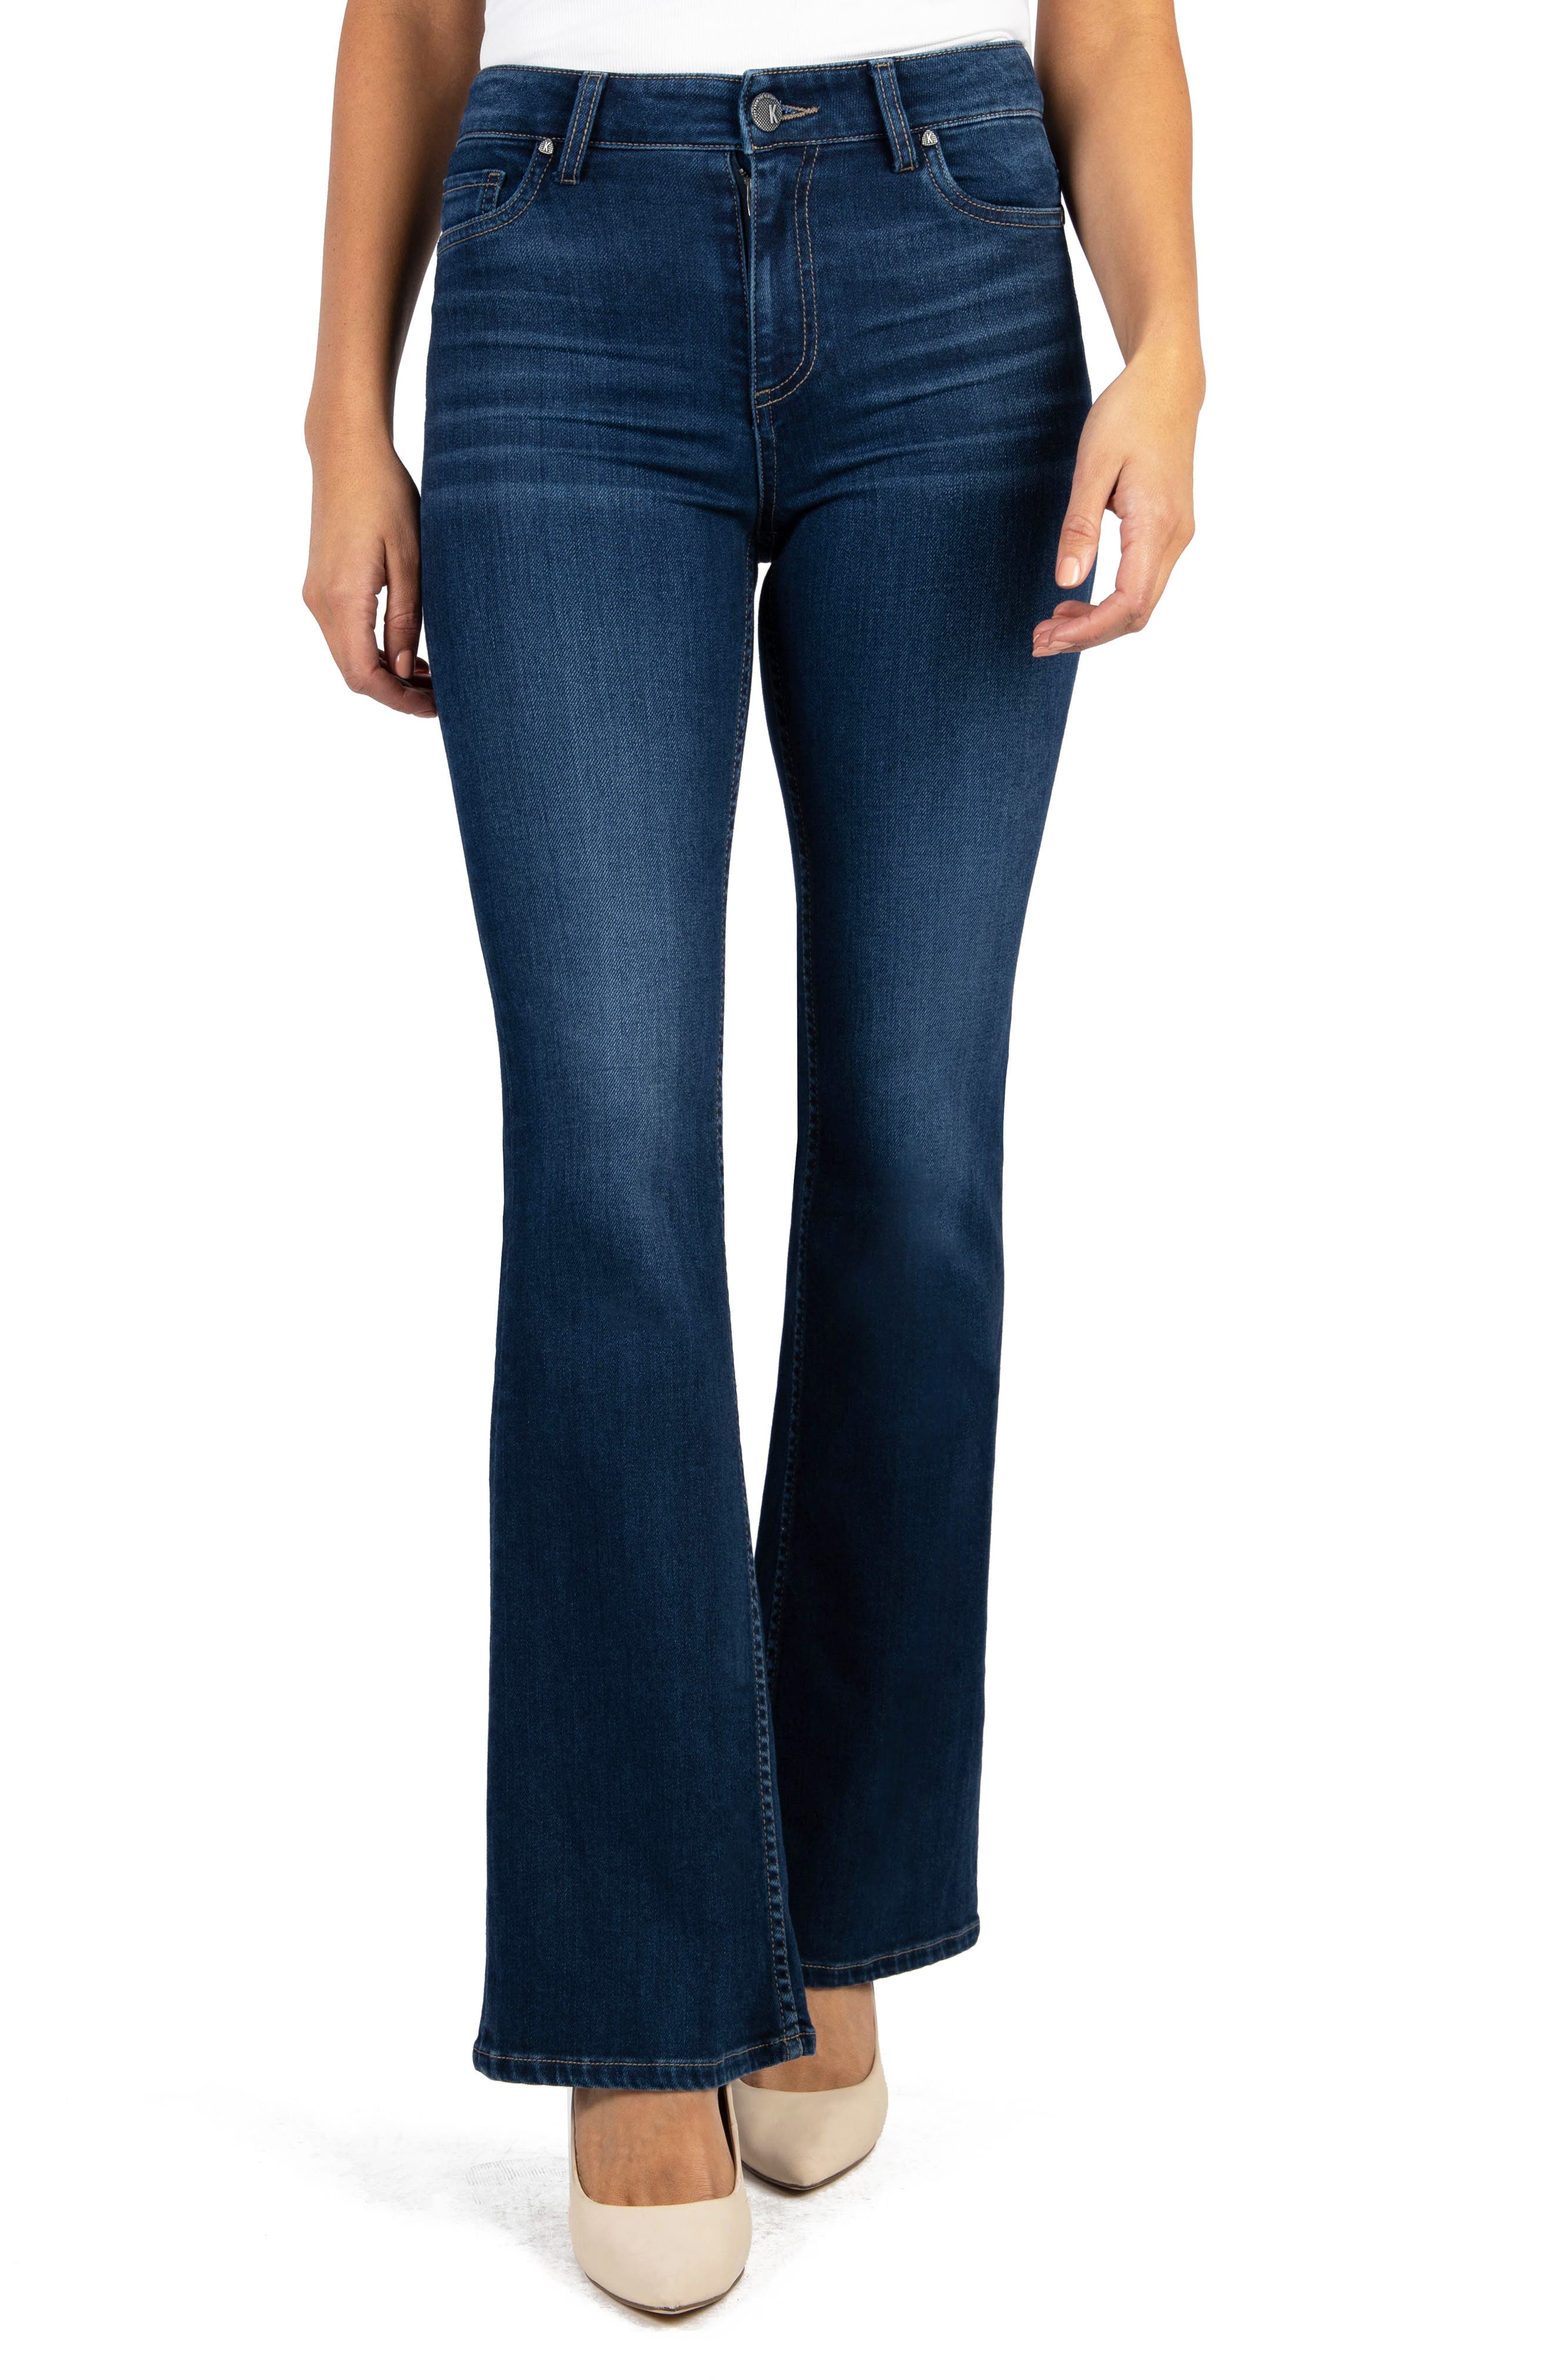 Image of KUT from the Kloth Ellie High Rise Flare Leg Jeans